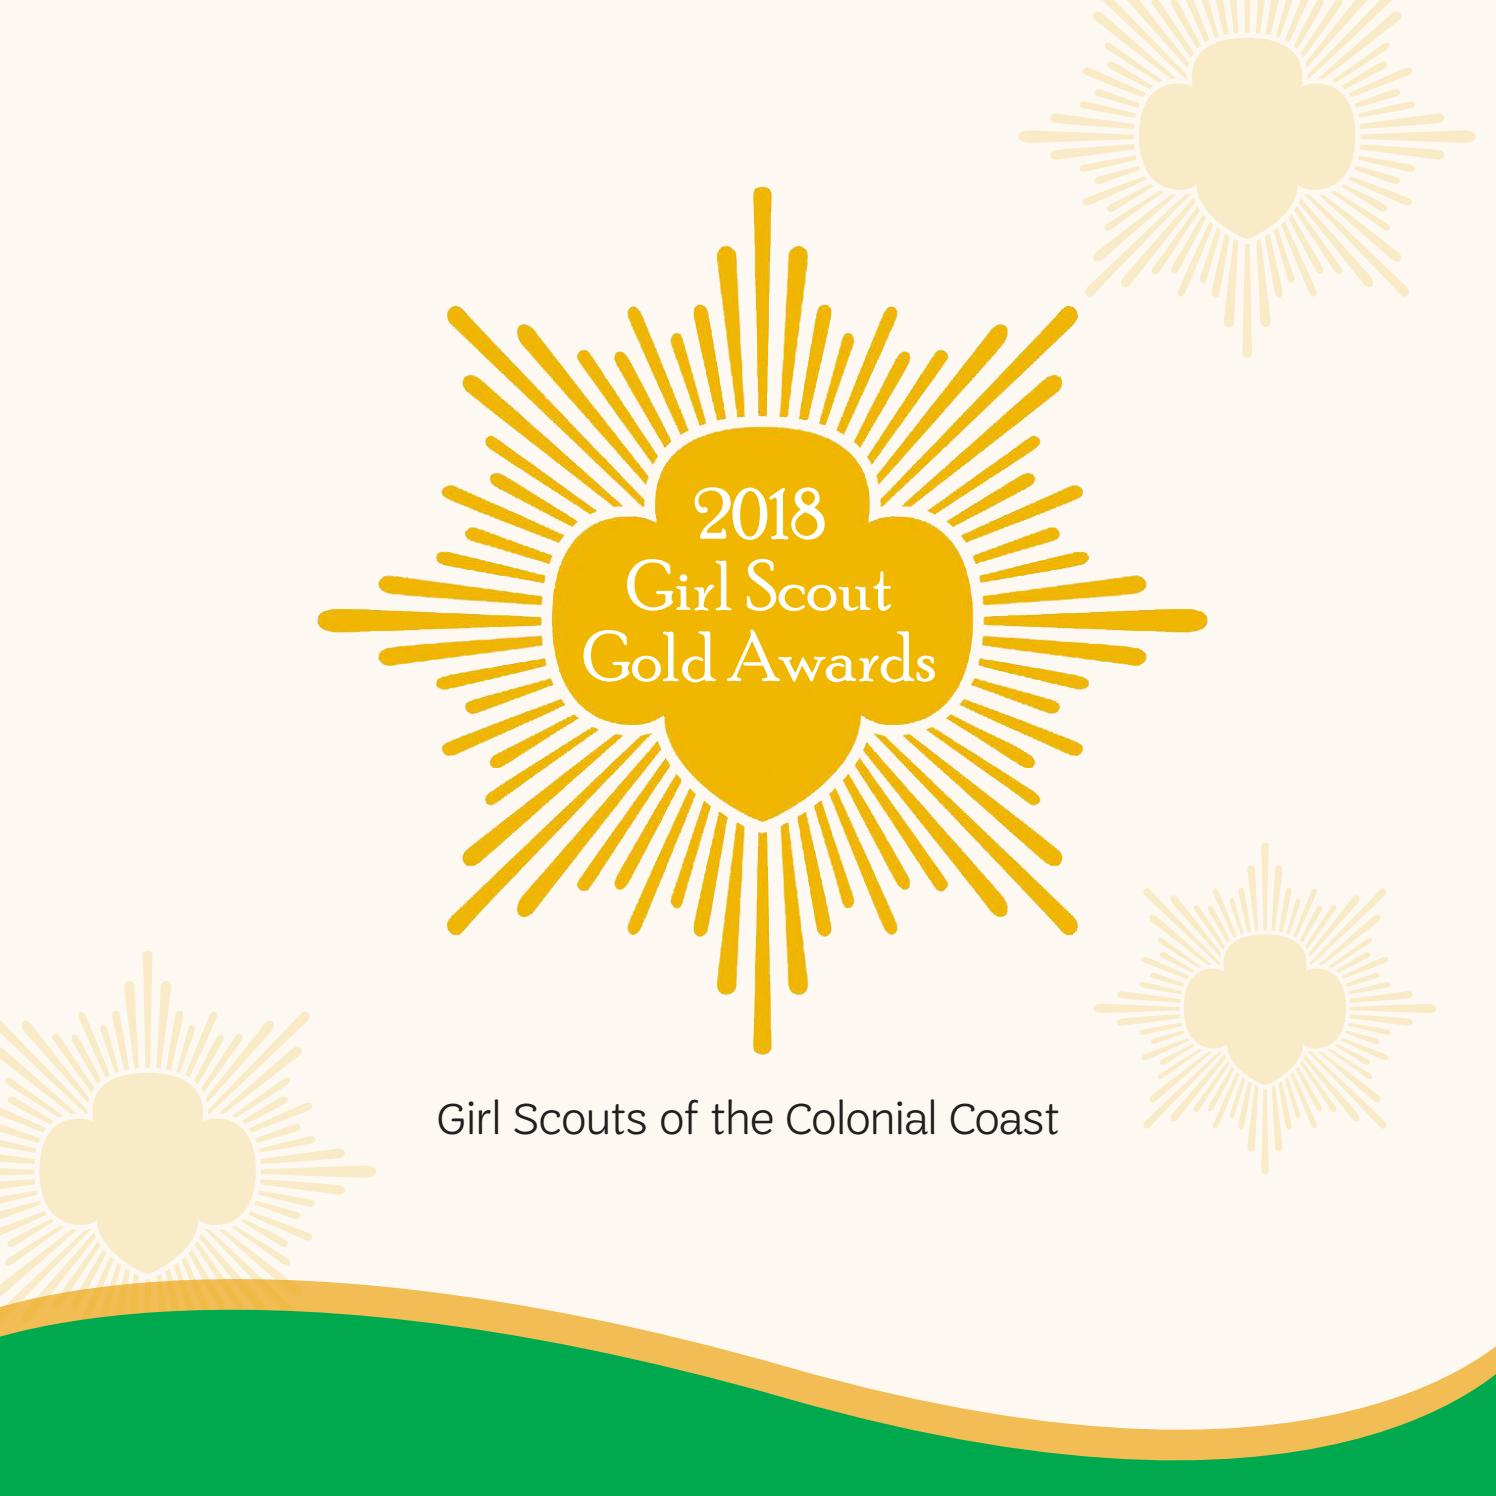 Girl scout gold award clipart image library library 2018 Girl Scout Gold Awards - GSCCC by Girl Scouts of the Colonial ... image library library